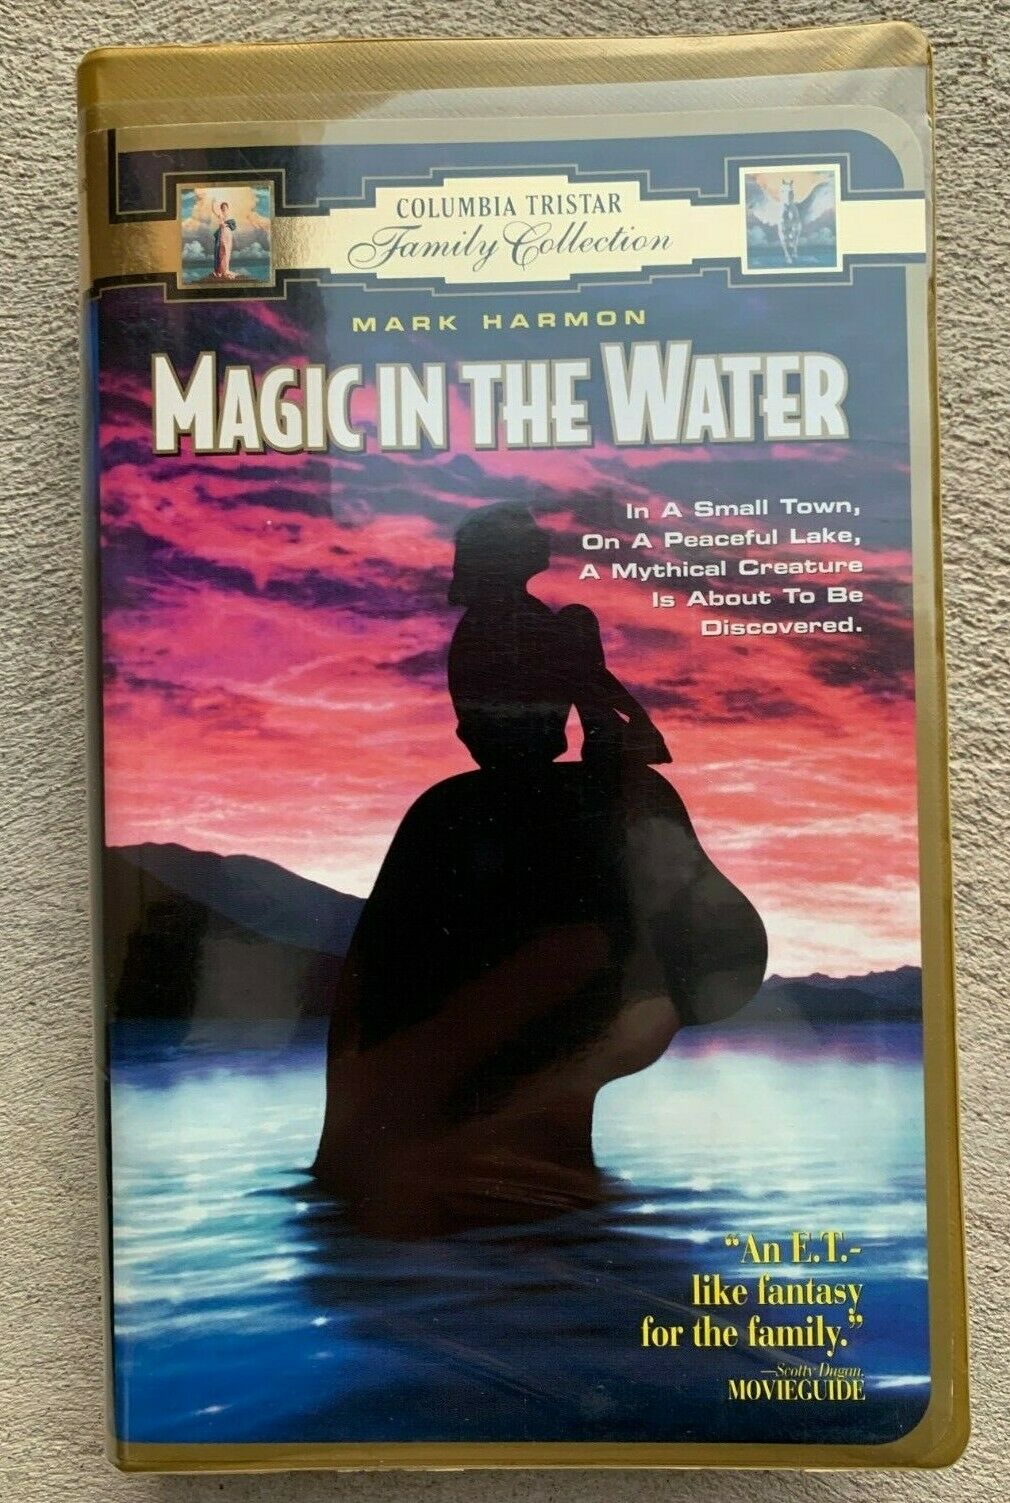 Magic in the Water (1996 VHS)